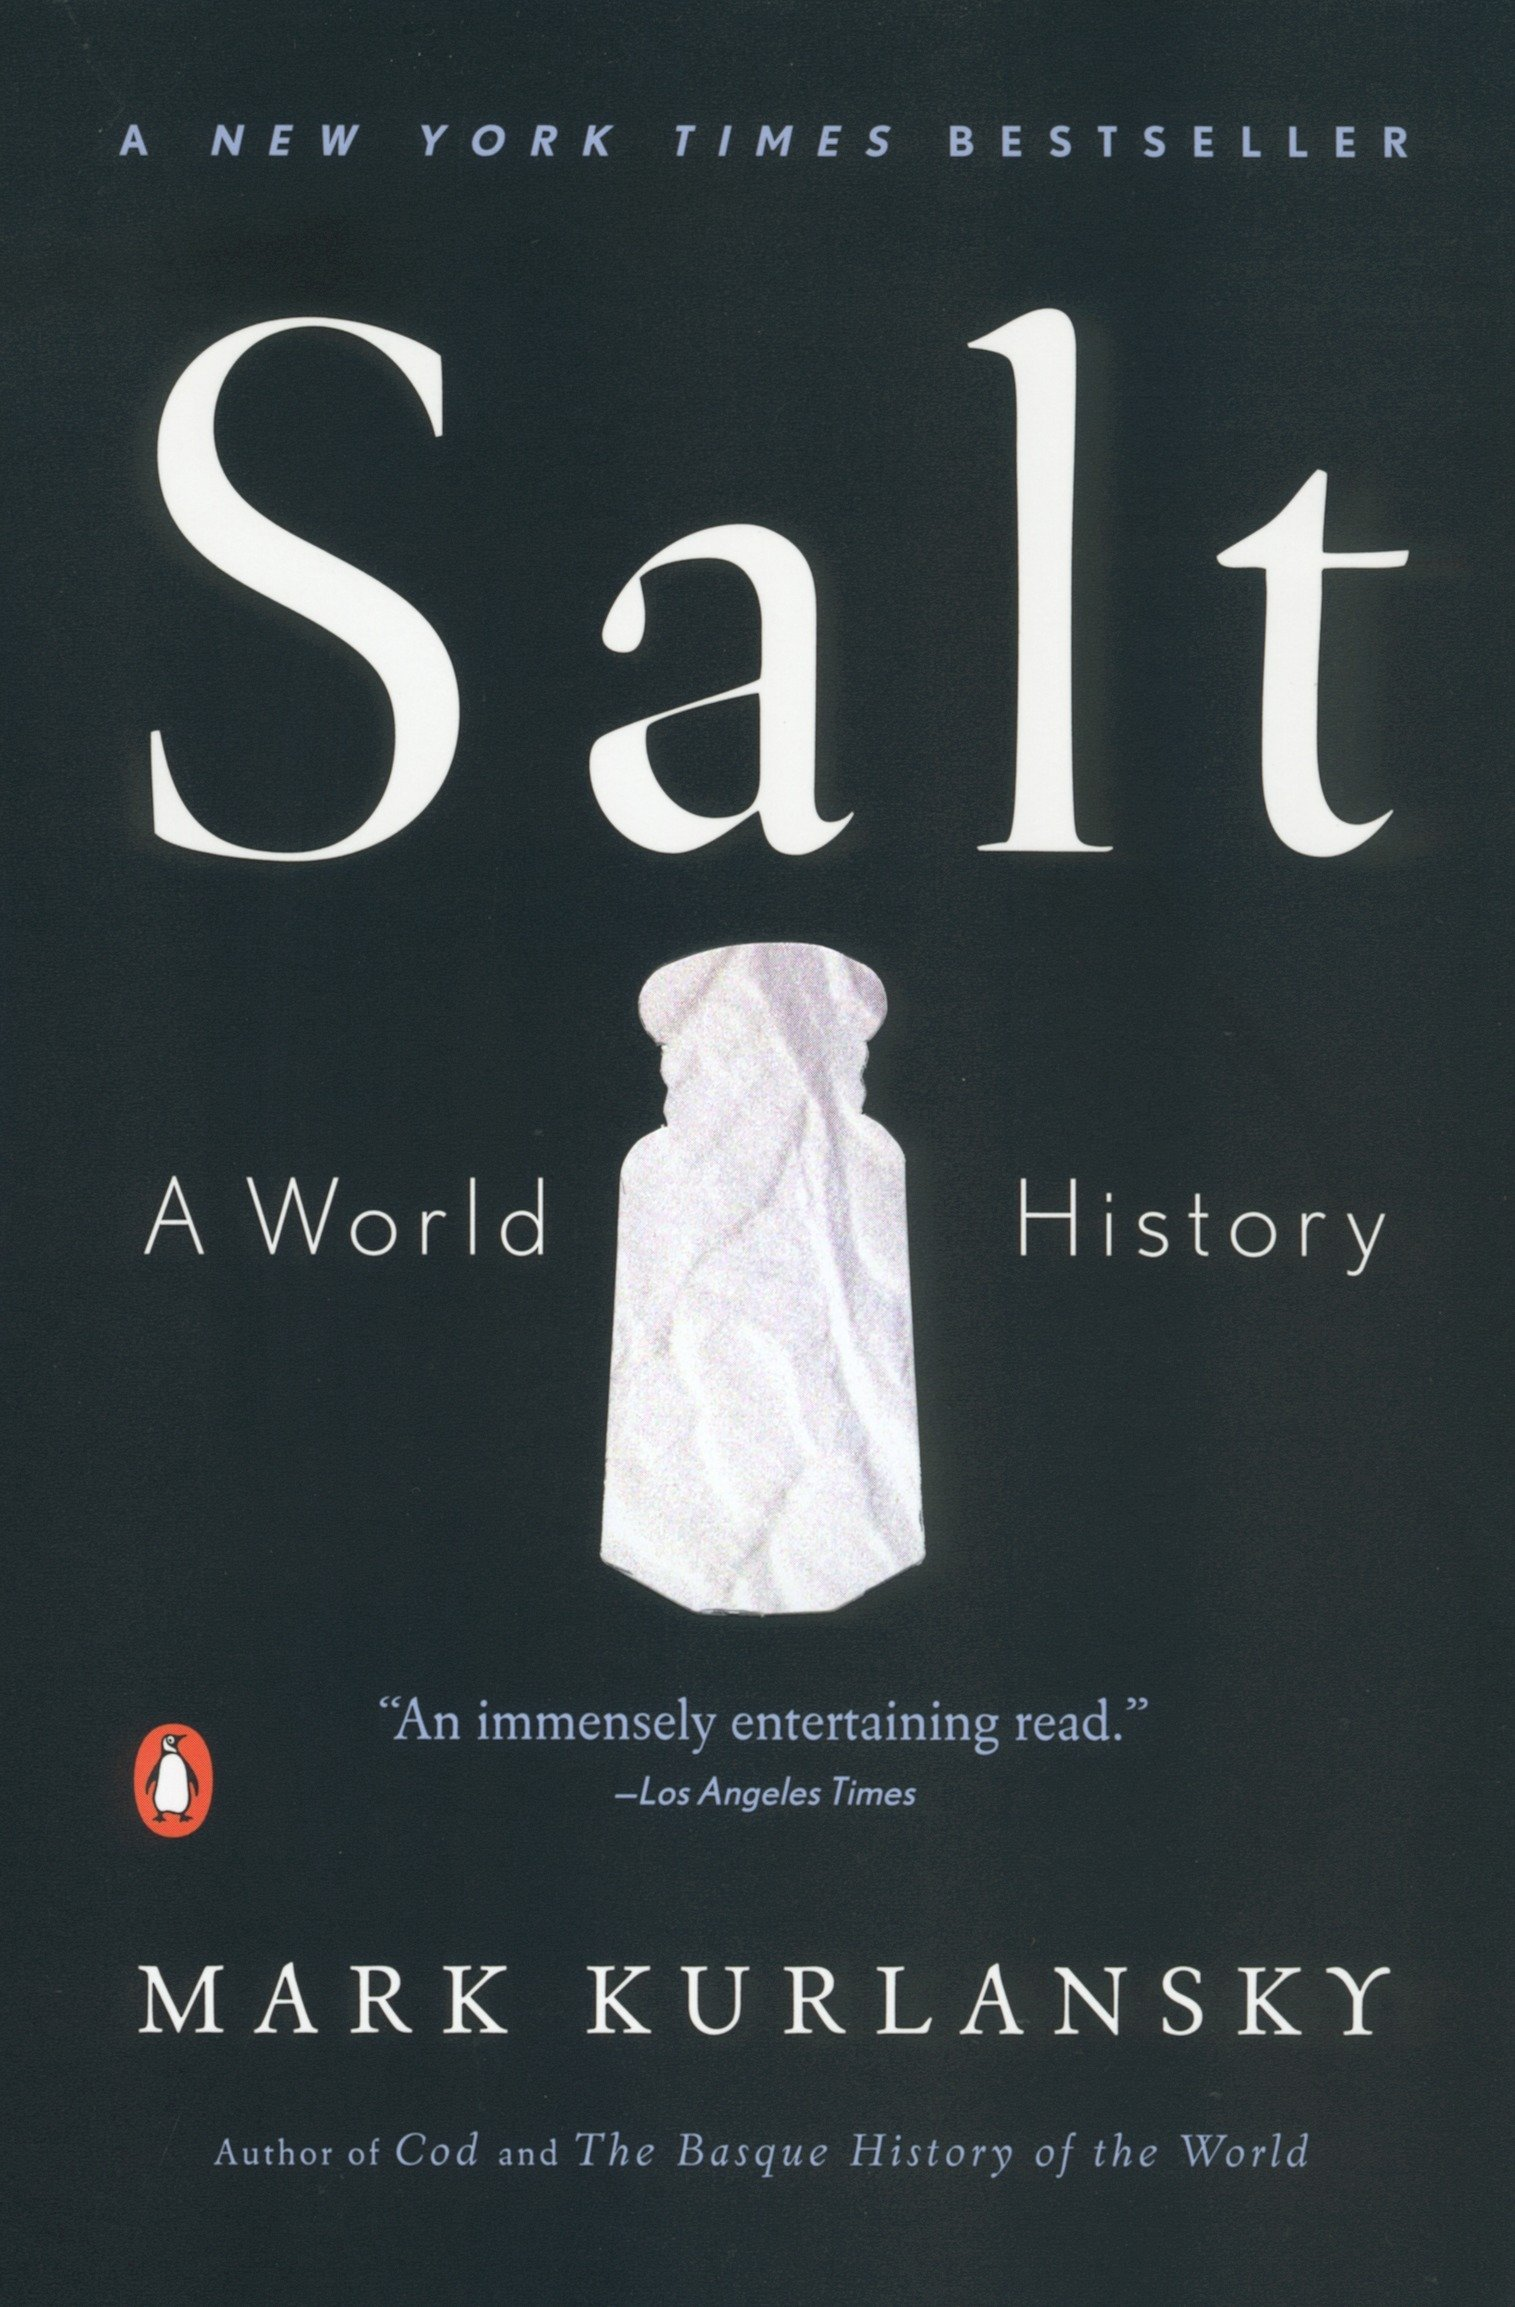 salt : a world history - By Mark KurlanskyMark Kurlansky, the bestselling author of Cod and The Basque History of the World, here turns his attention to a common household item with a long and intriguing history: salt. The only rock we eat, salt has shaped civilization from the very beginning, and its story is a glittering, often surprising part of the history of humankind.A substance so valuable it served as currency, salt has influenced the establishment of trade routes and cities, provoked and financed wars, secured empires, and inspired revolutions. Populated by colorful characters and filled with an unending series of fascinating details, Kurlansky's kaleidoscopic history is a supremely entertaining, multi-layered masterpiece.